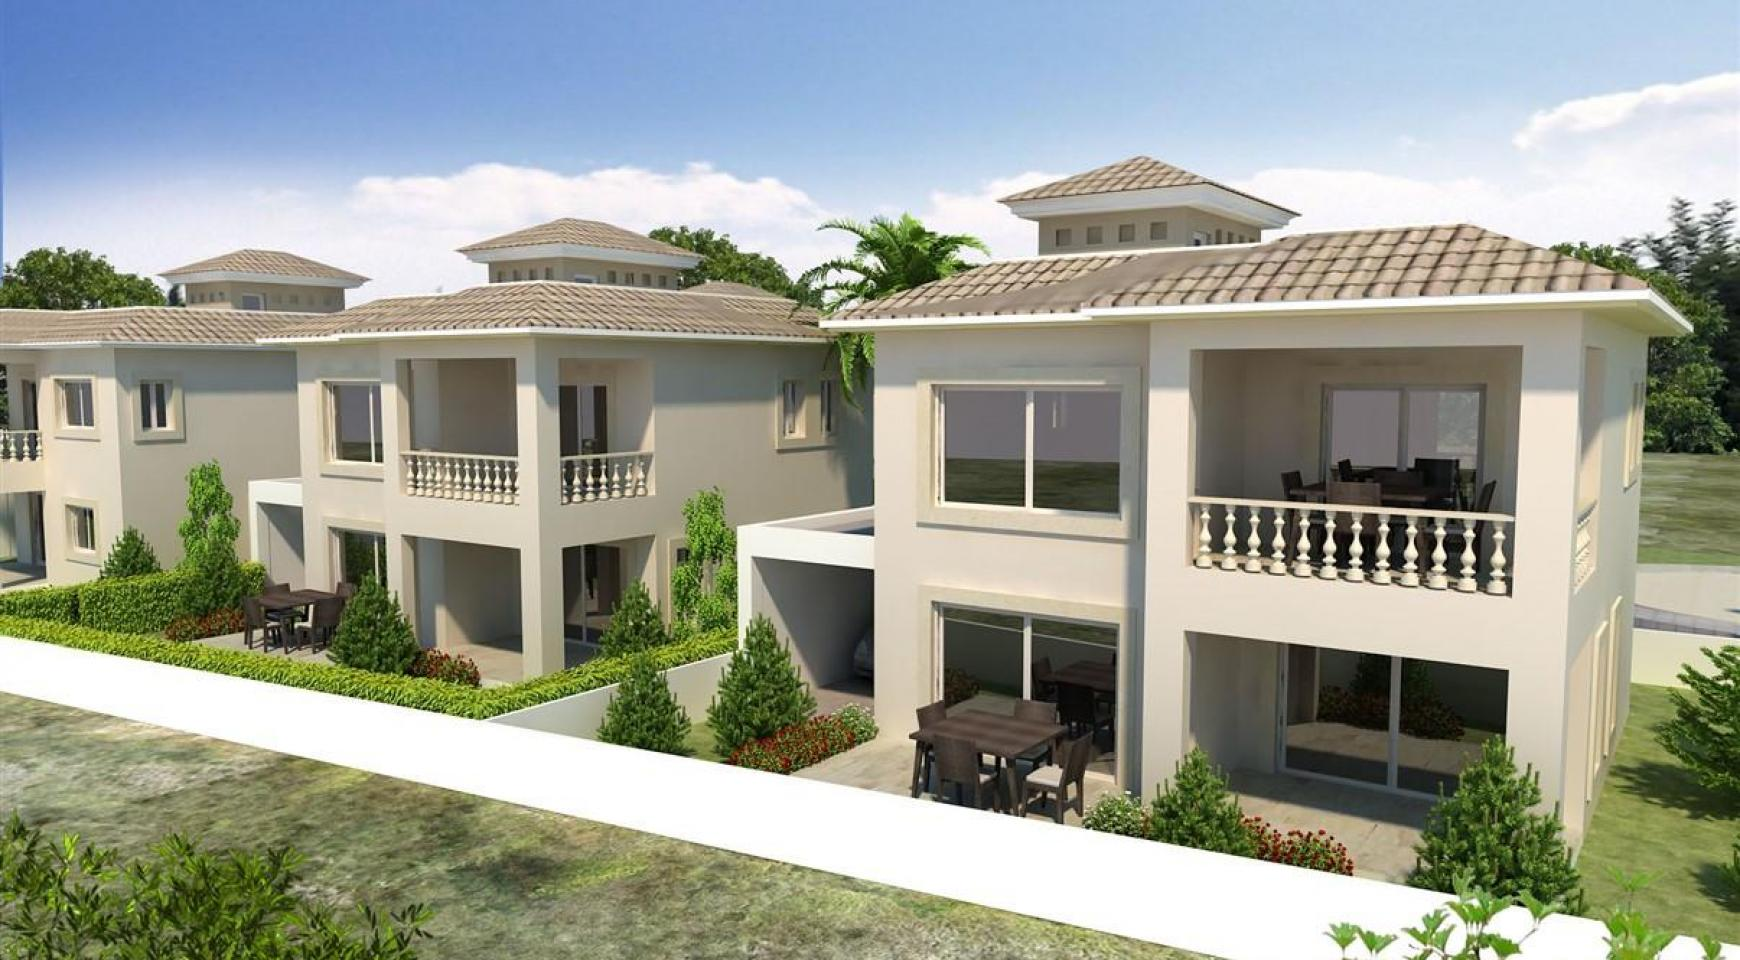 3 Bedroom Villa in New Project in Paphos - 19